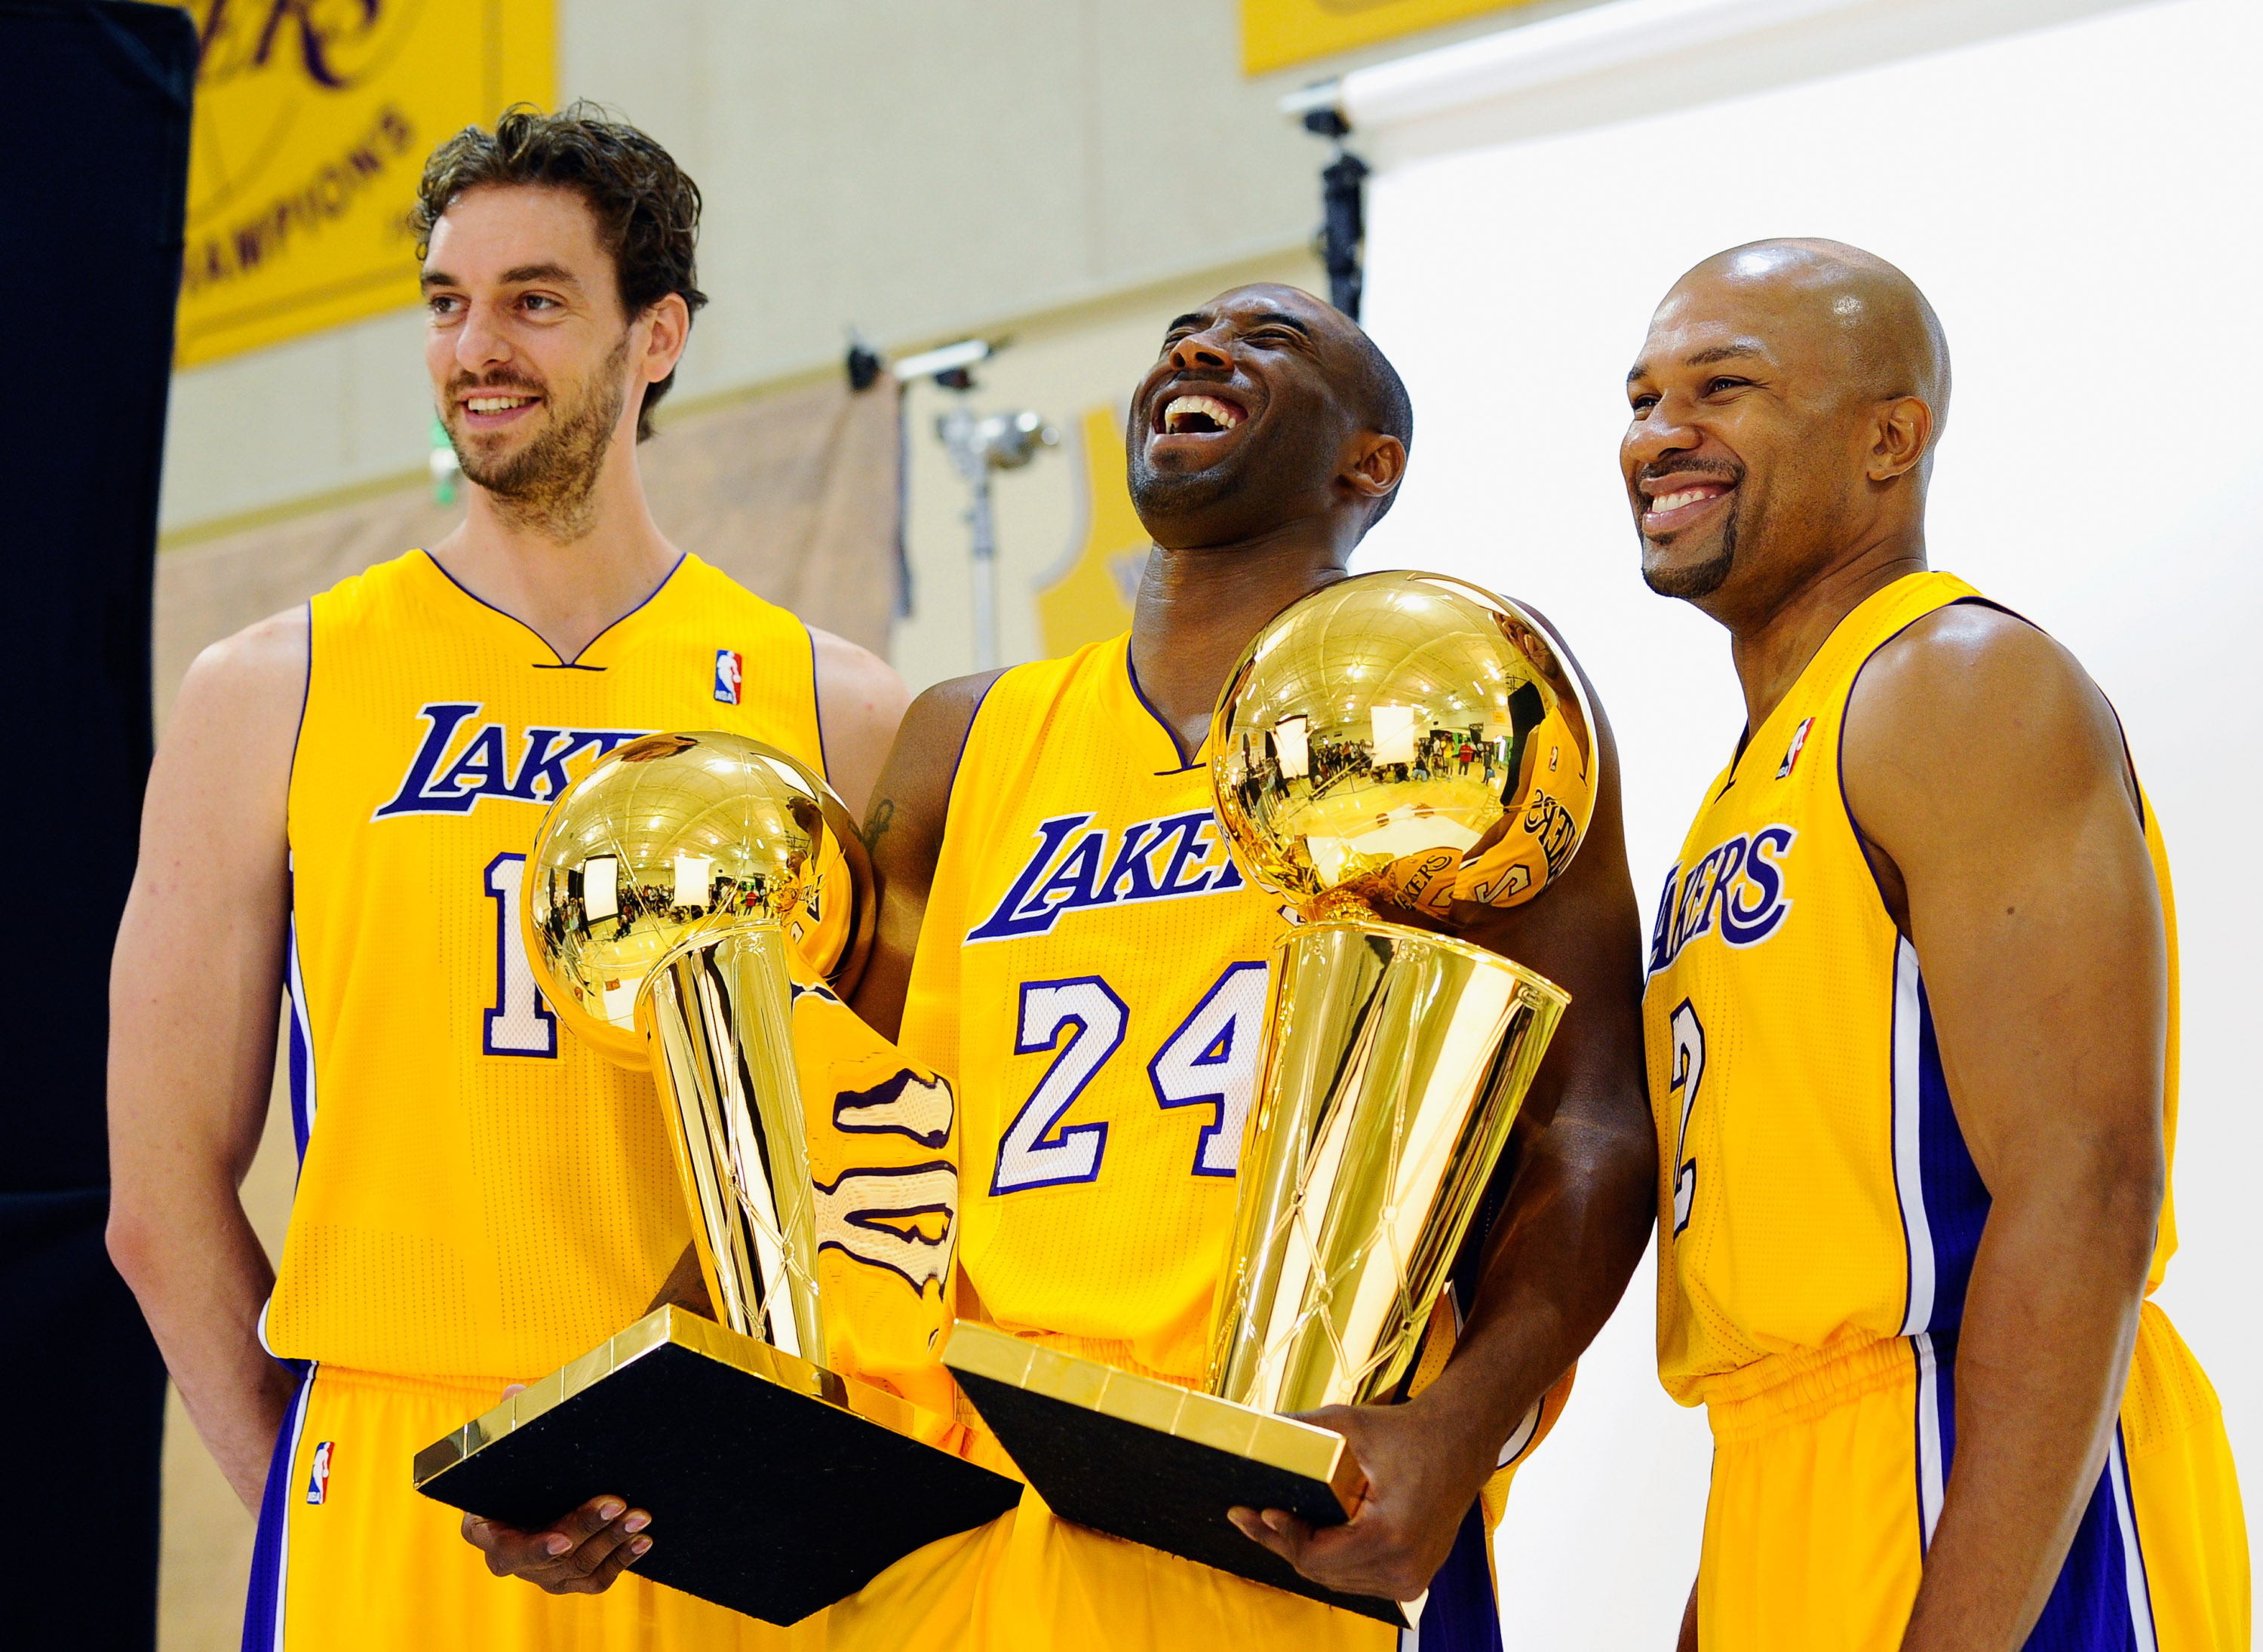 EL SEGUNDO, CA - SEPTEMBER 25:  Kobe Bryant #24  of the Los Angeles Lakers laughs as he holds two NBA Finals Larry O'Brien Championship Trophy's as he poses for a photograph with teammates Pau Gasol #16 and Derek Fisher #2 during Media Day at the Toyota C